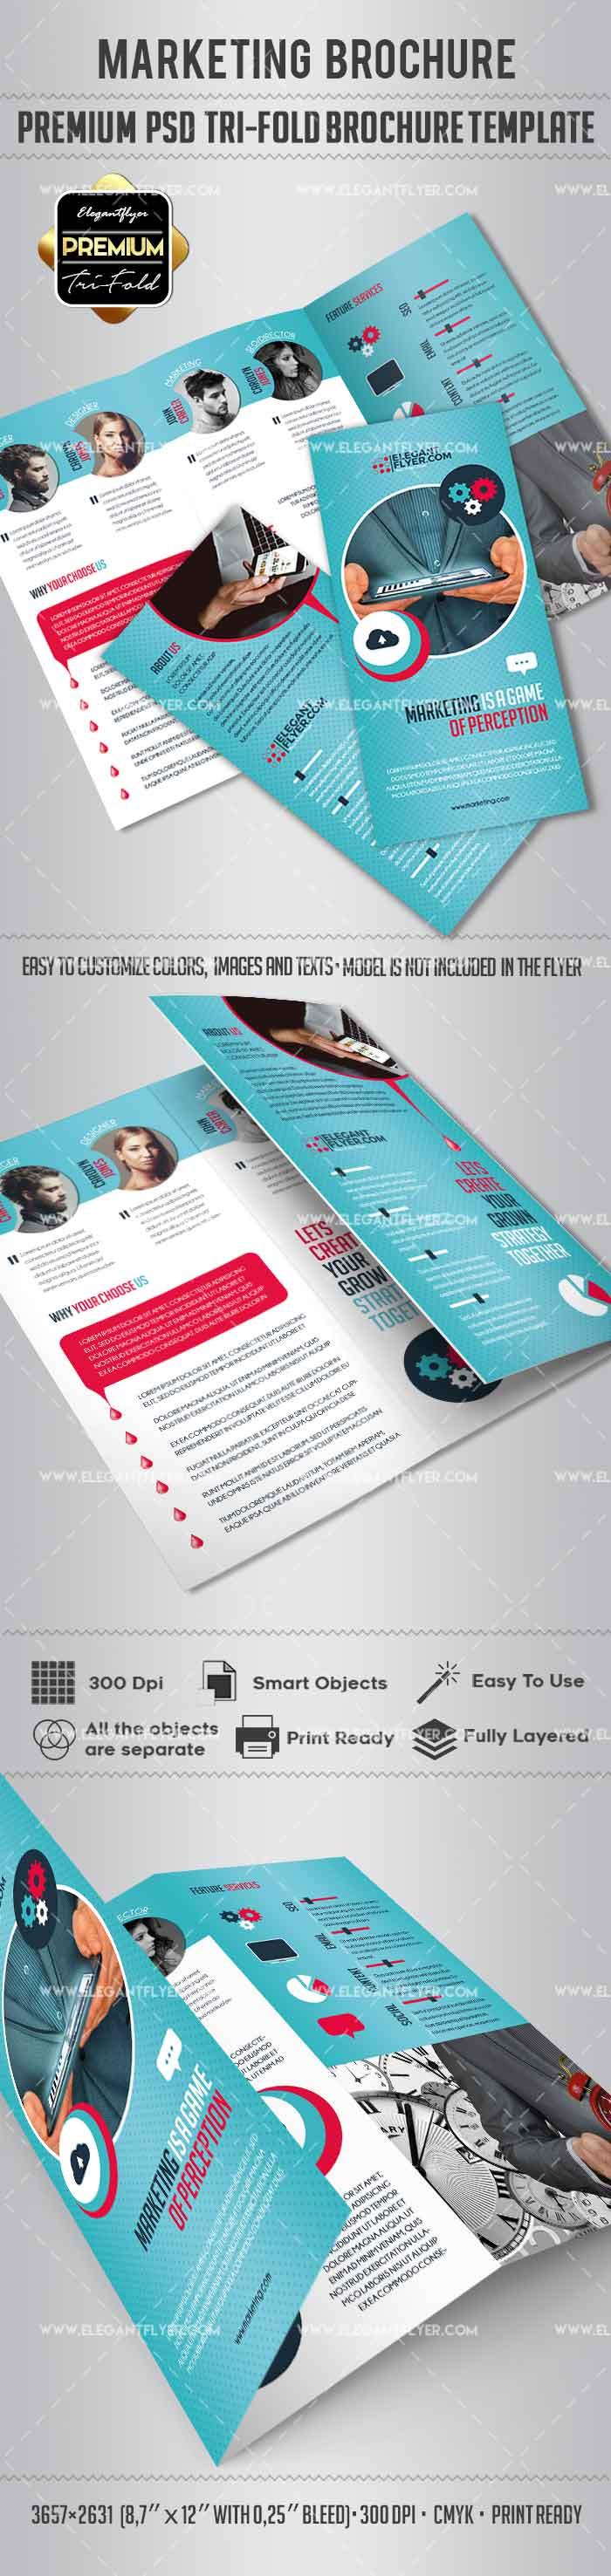 tri fold brochure template psd free - tri fold brochure for marketing by elegantflyer